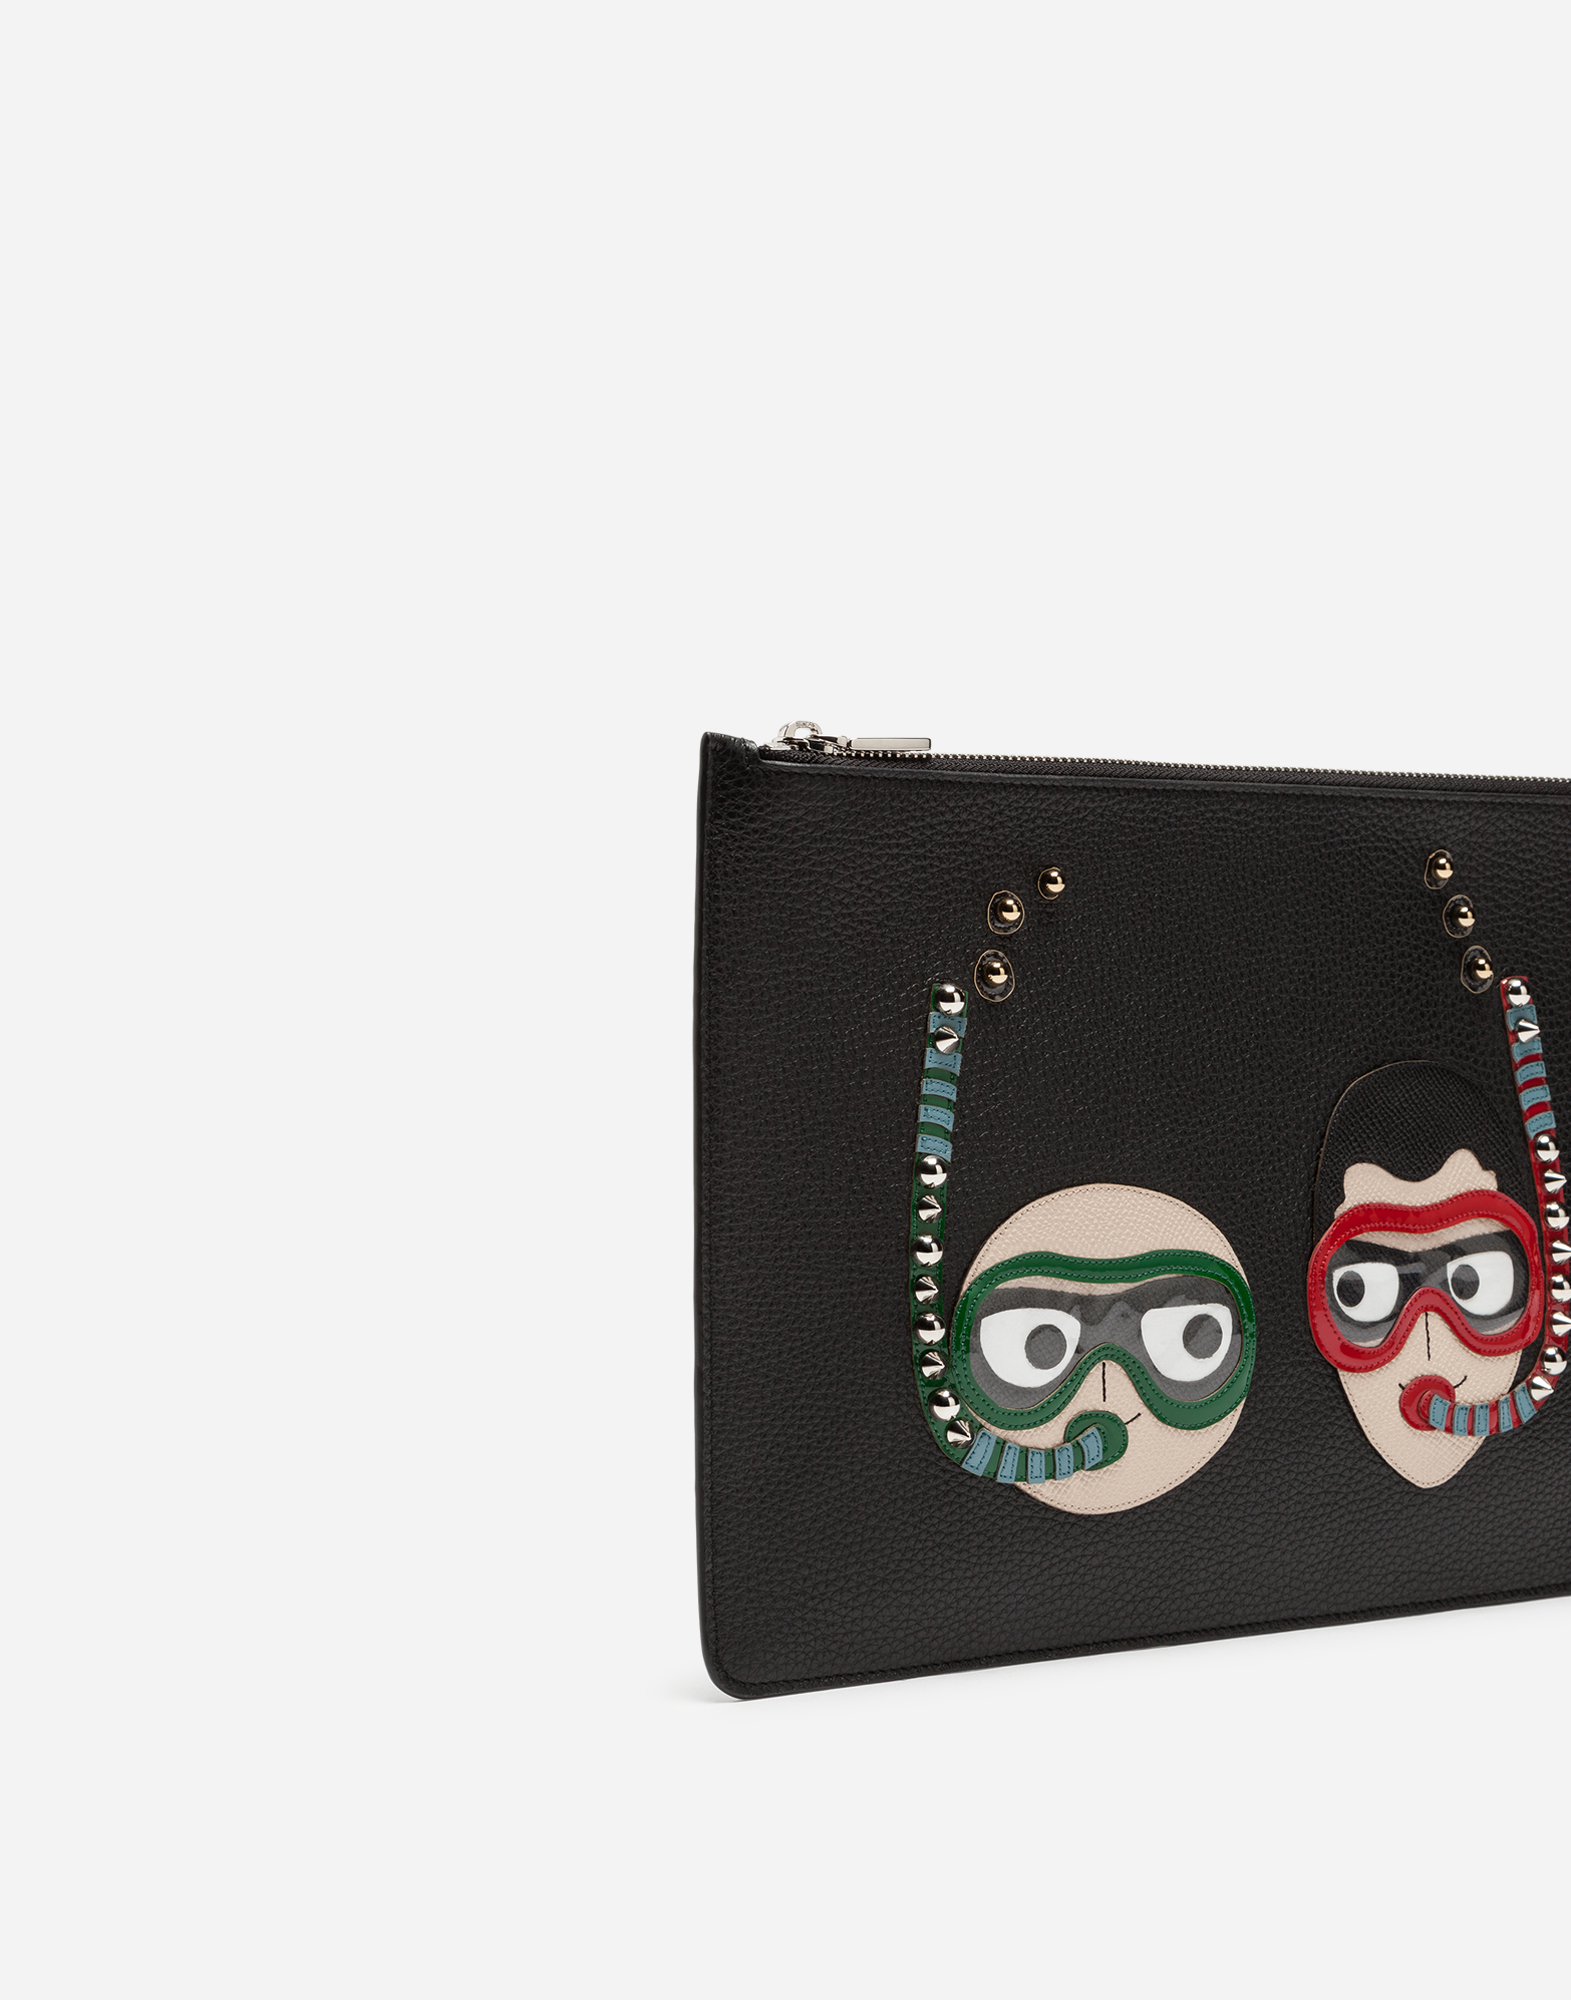 Dolce&Gabbana CALFSKIN DOCUMENT HOLDER WITH EMBROIDERED PATCHES OF THE DESIGNERS